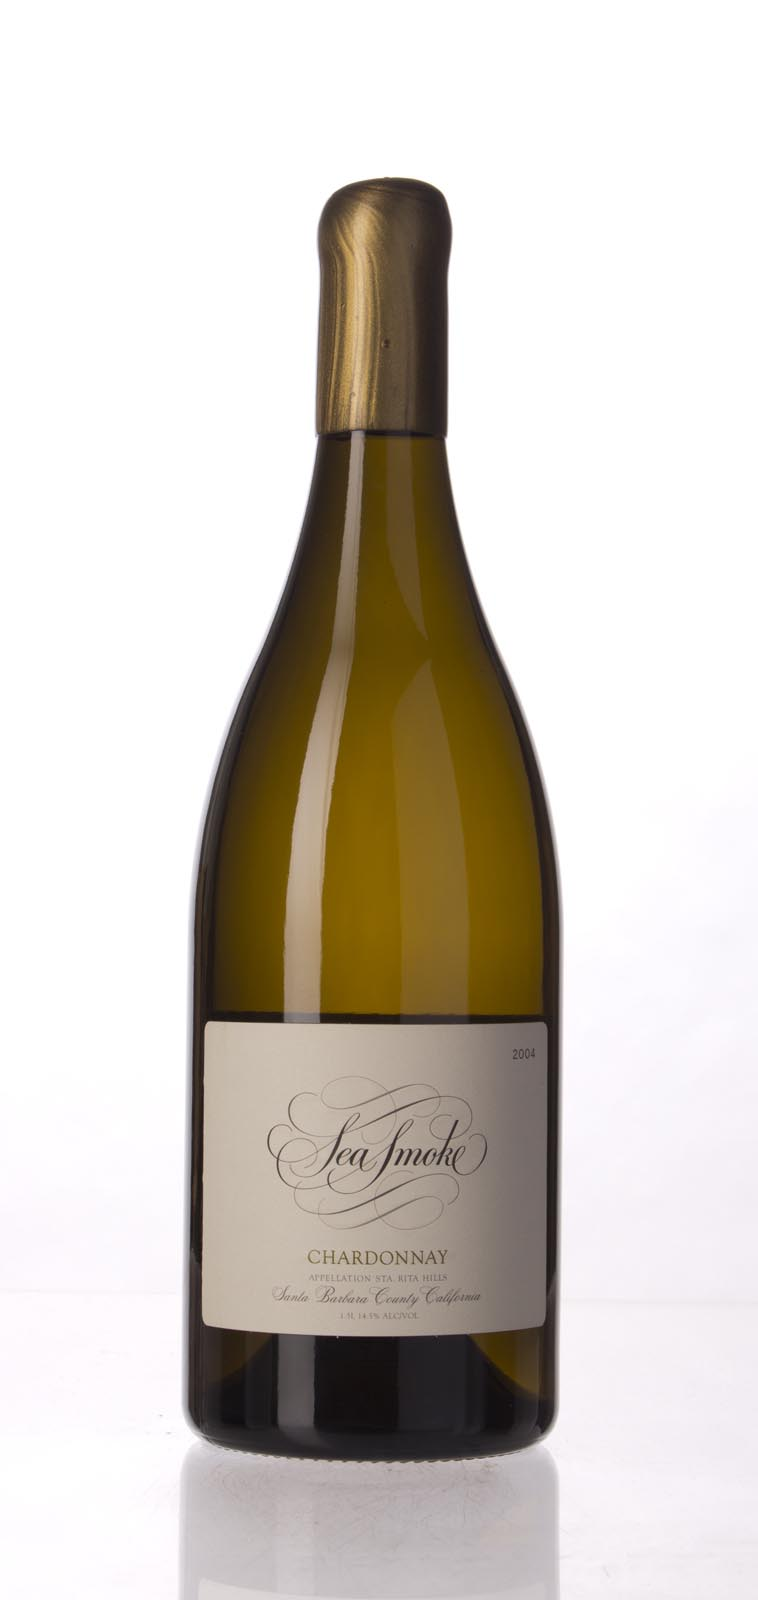 Sea Smoke Chardonnay Santa Rita Hills 2004, 1.5L () from The BPW - Merchants of rare and fine wines.